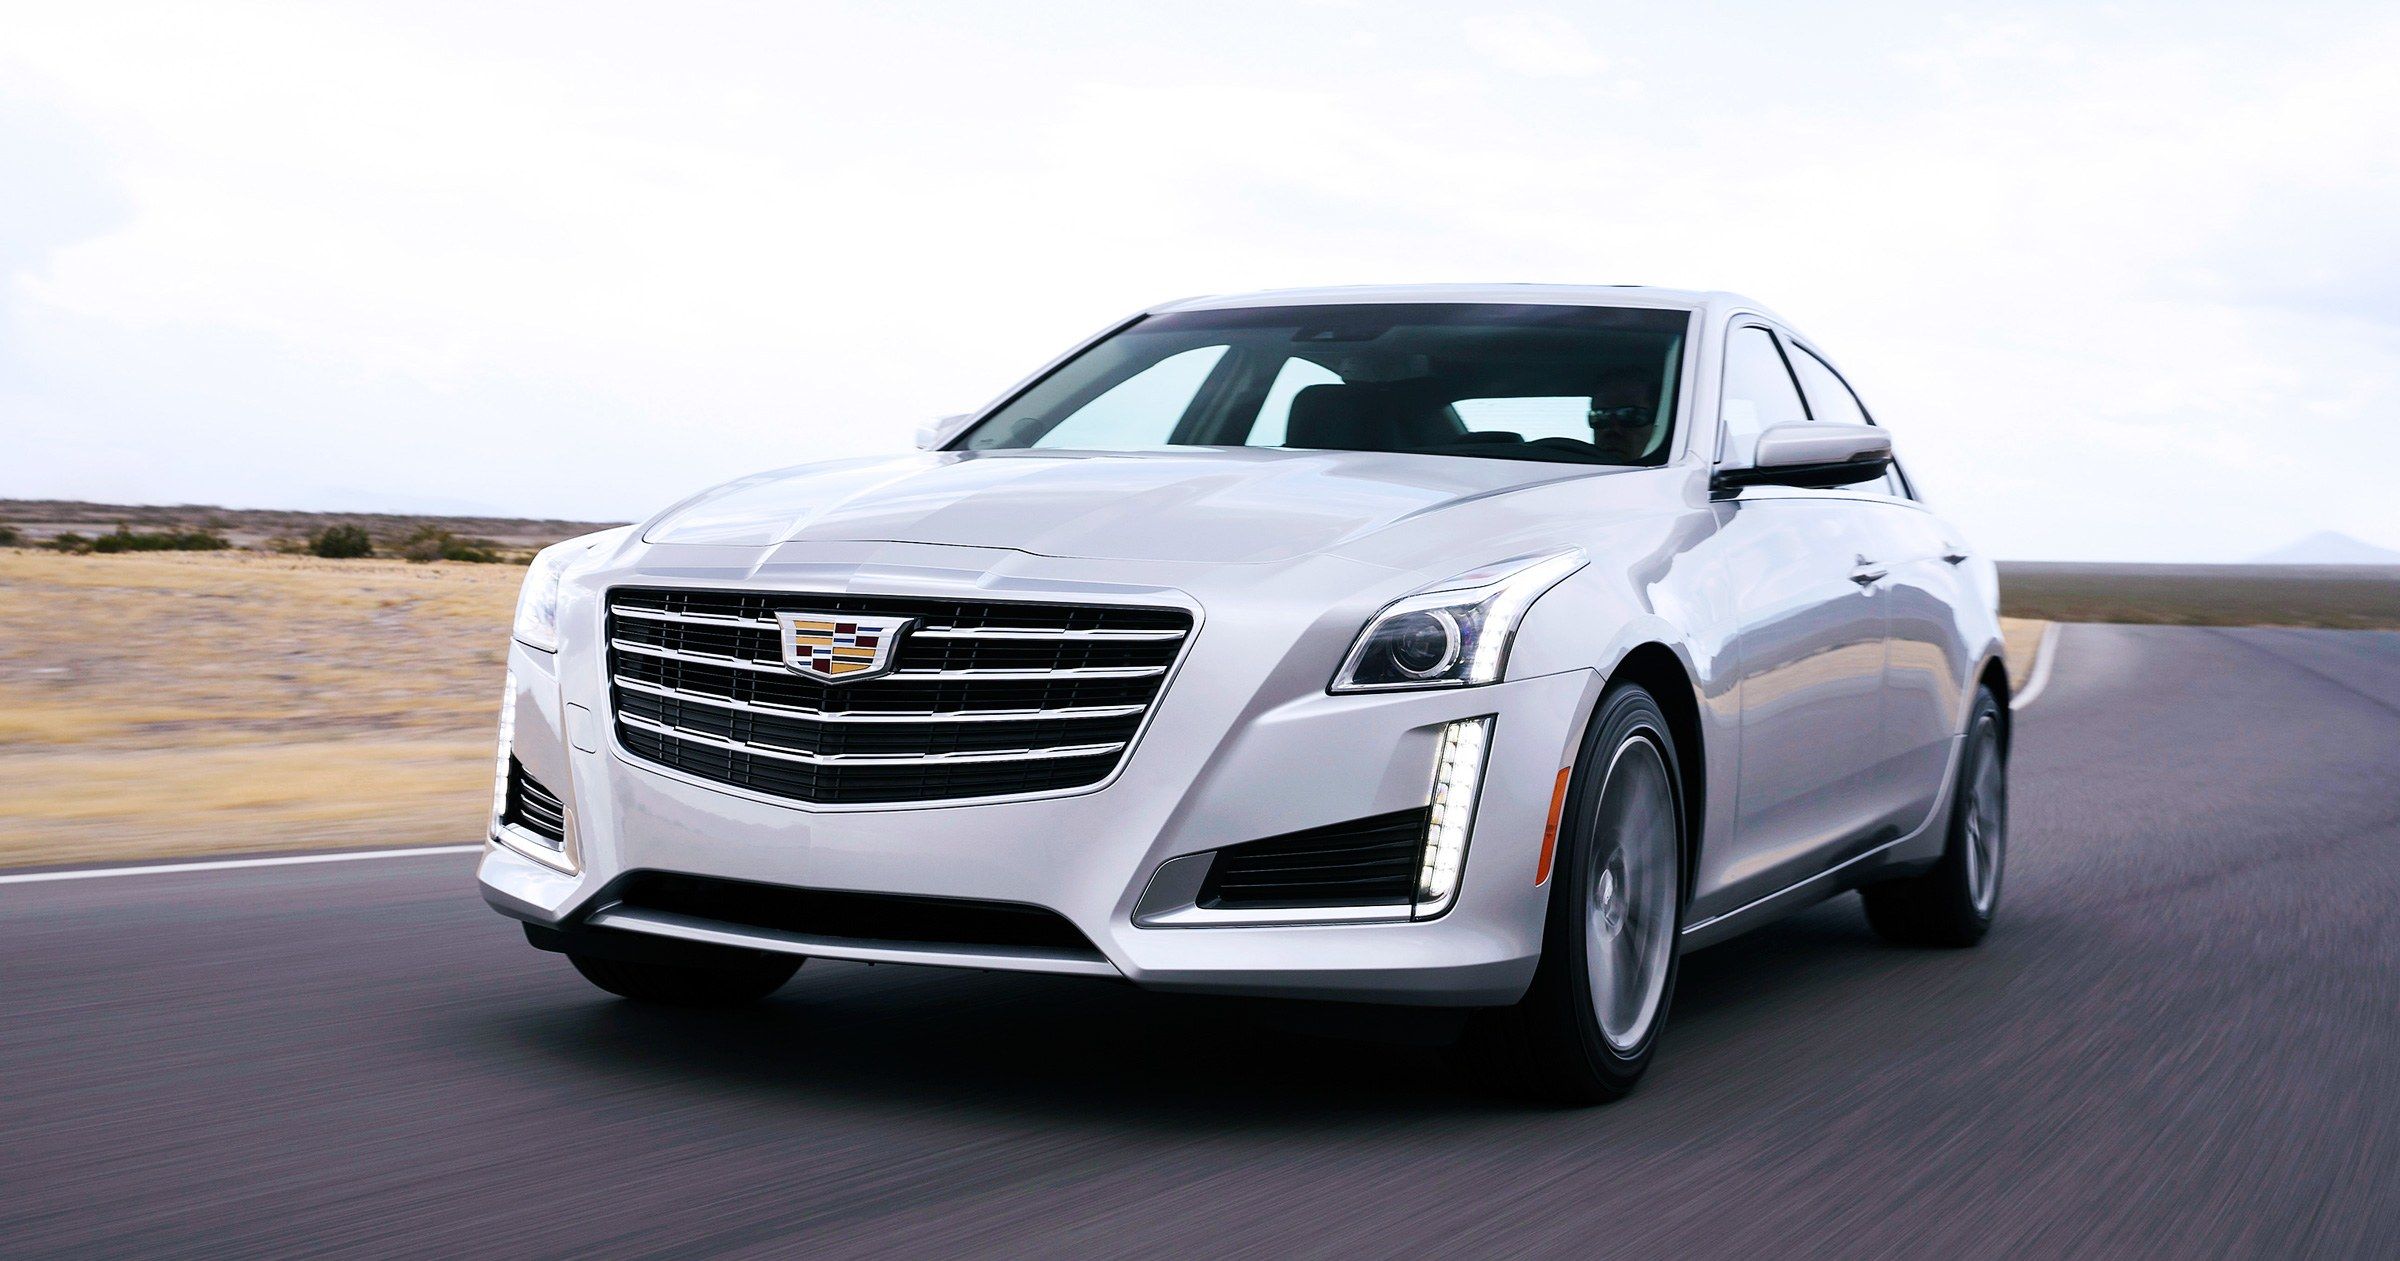 GM Previews Its Autonomous Tech Using Cadillac Prototypes In Israel